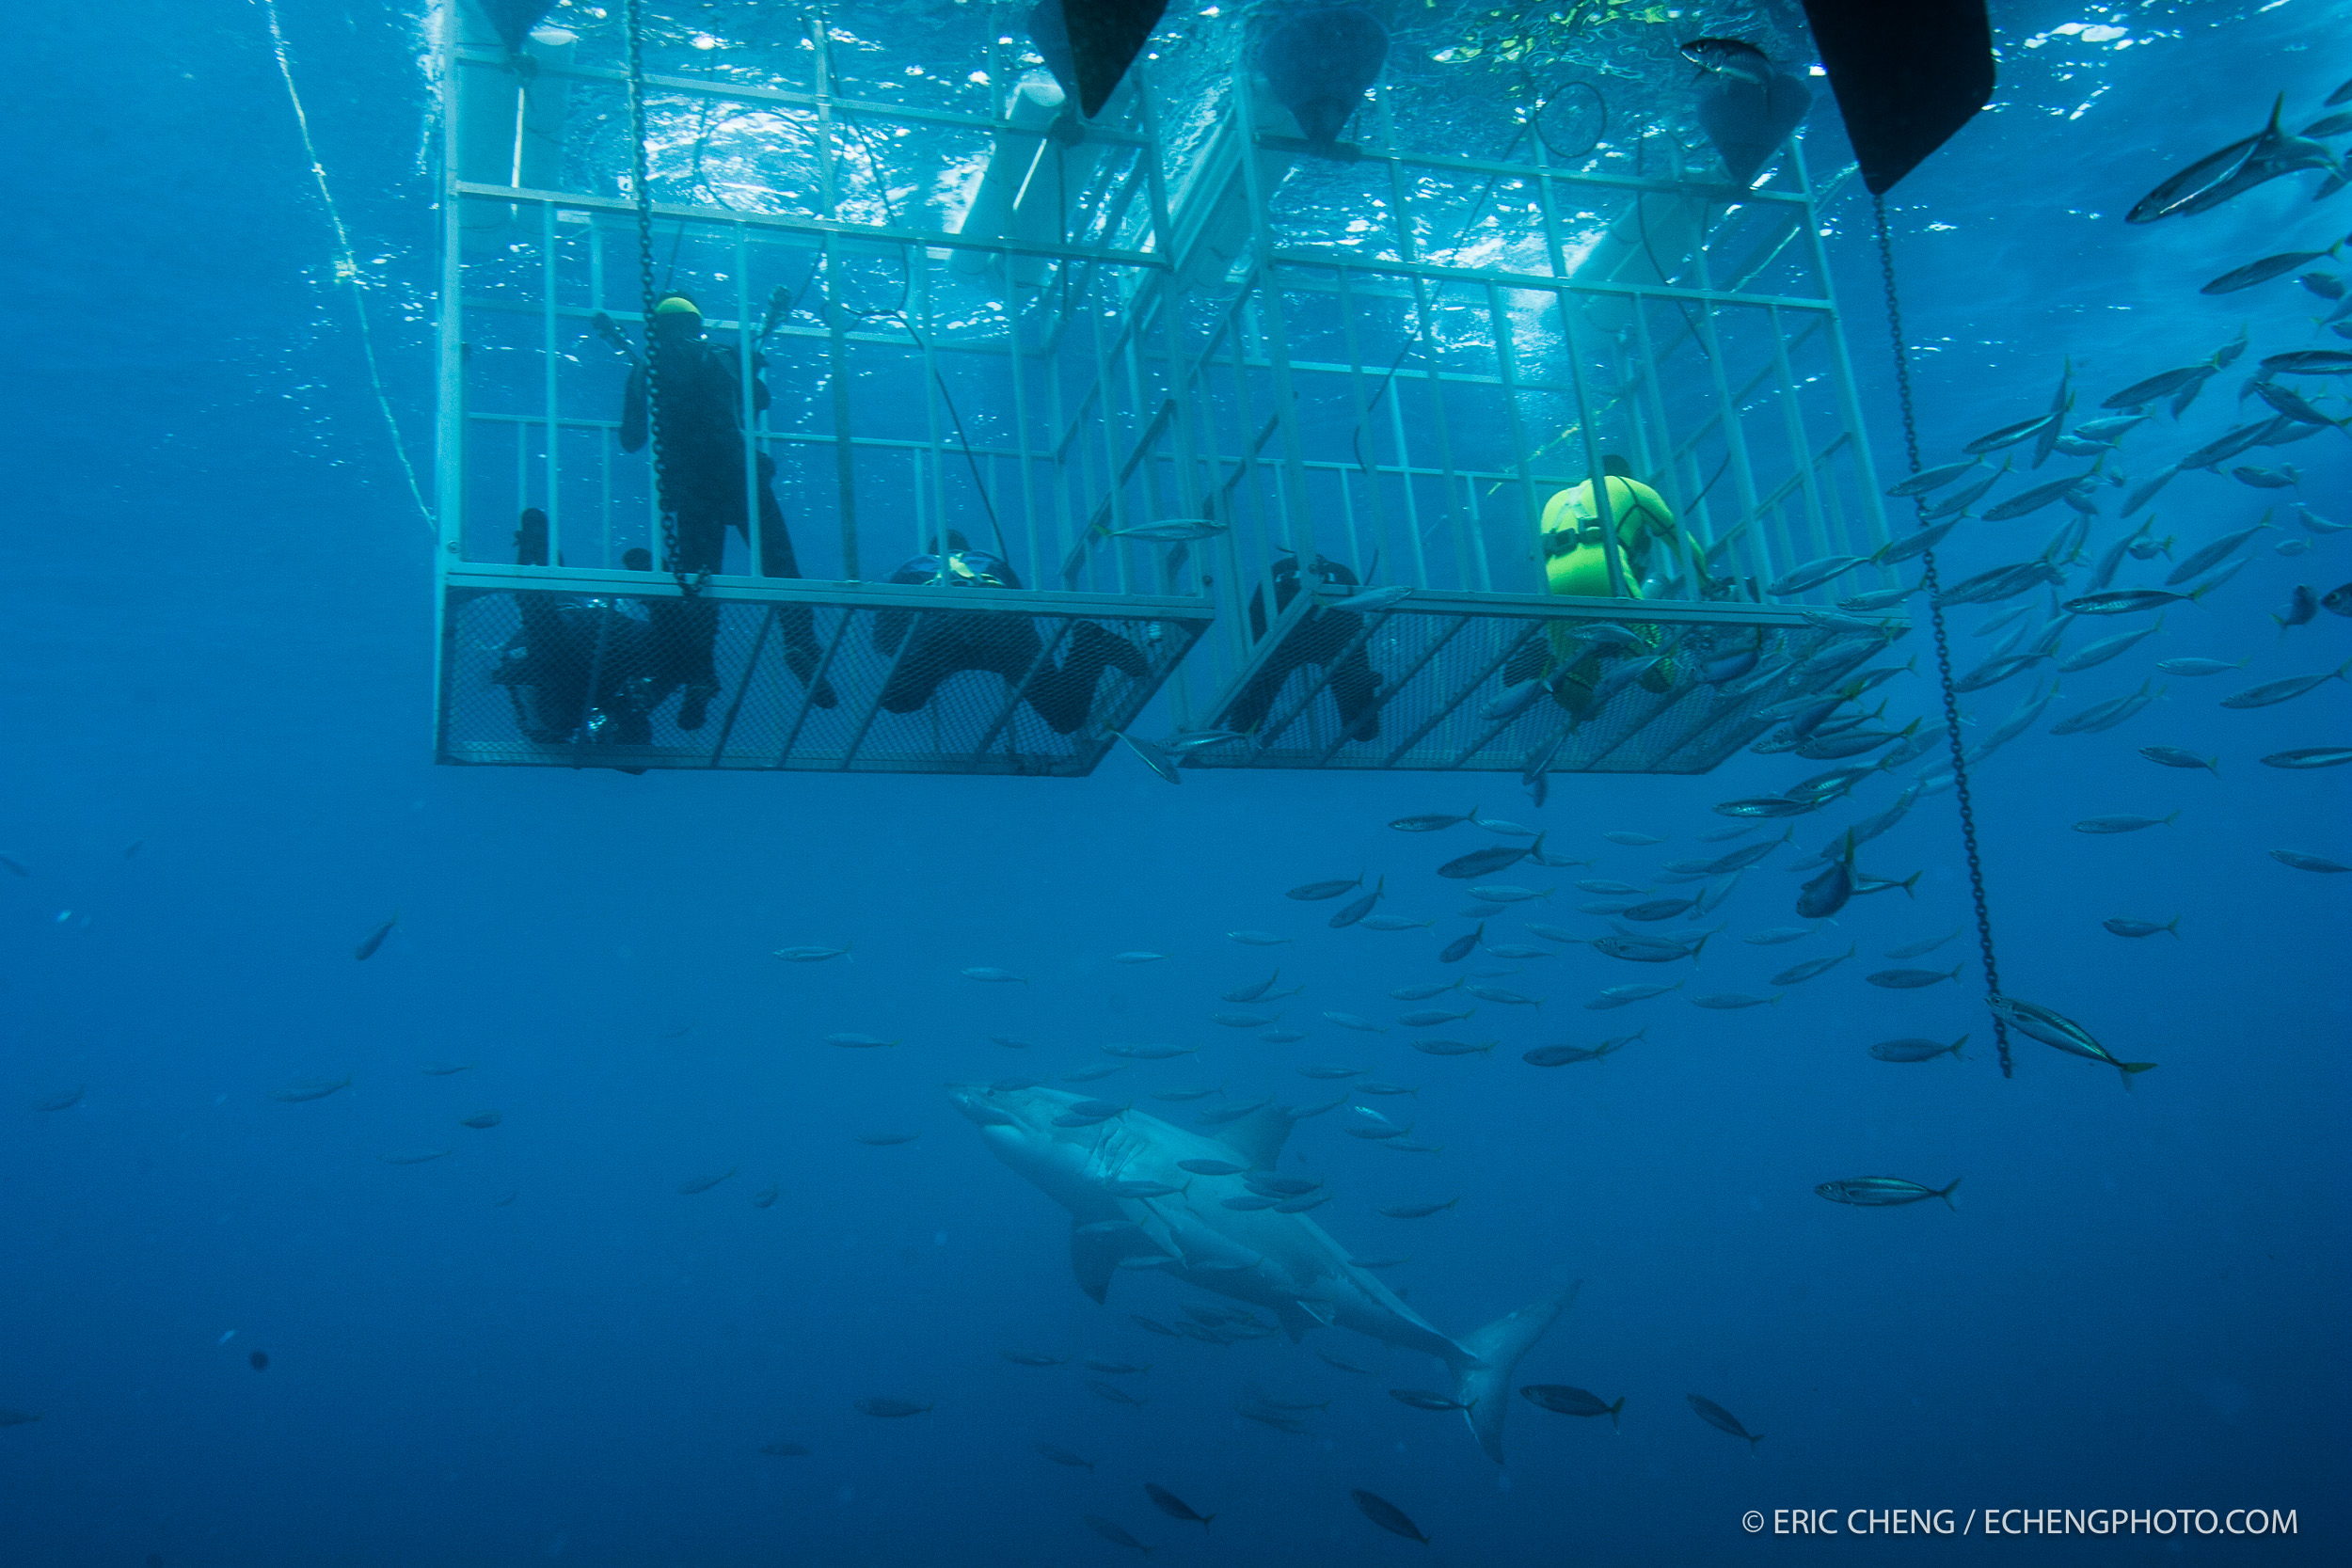 A white shark approaches the shark cages, underwater